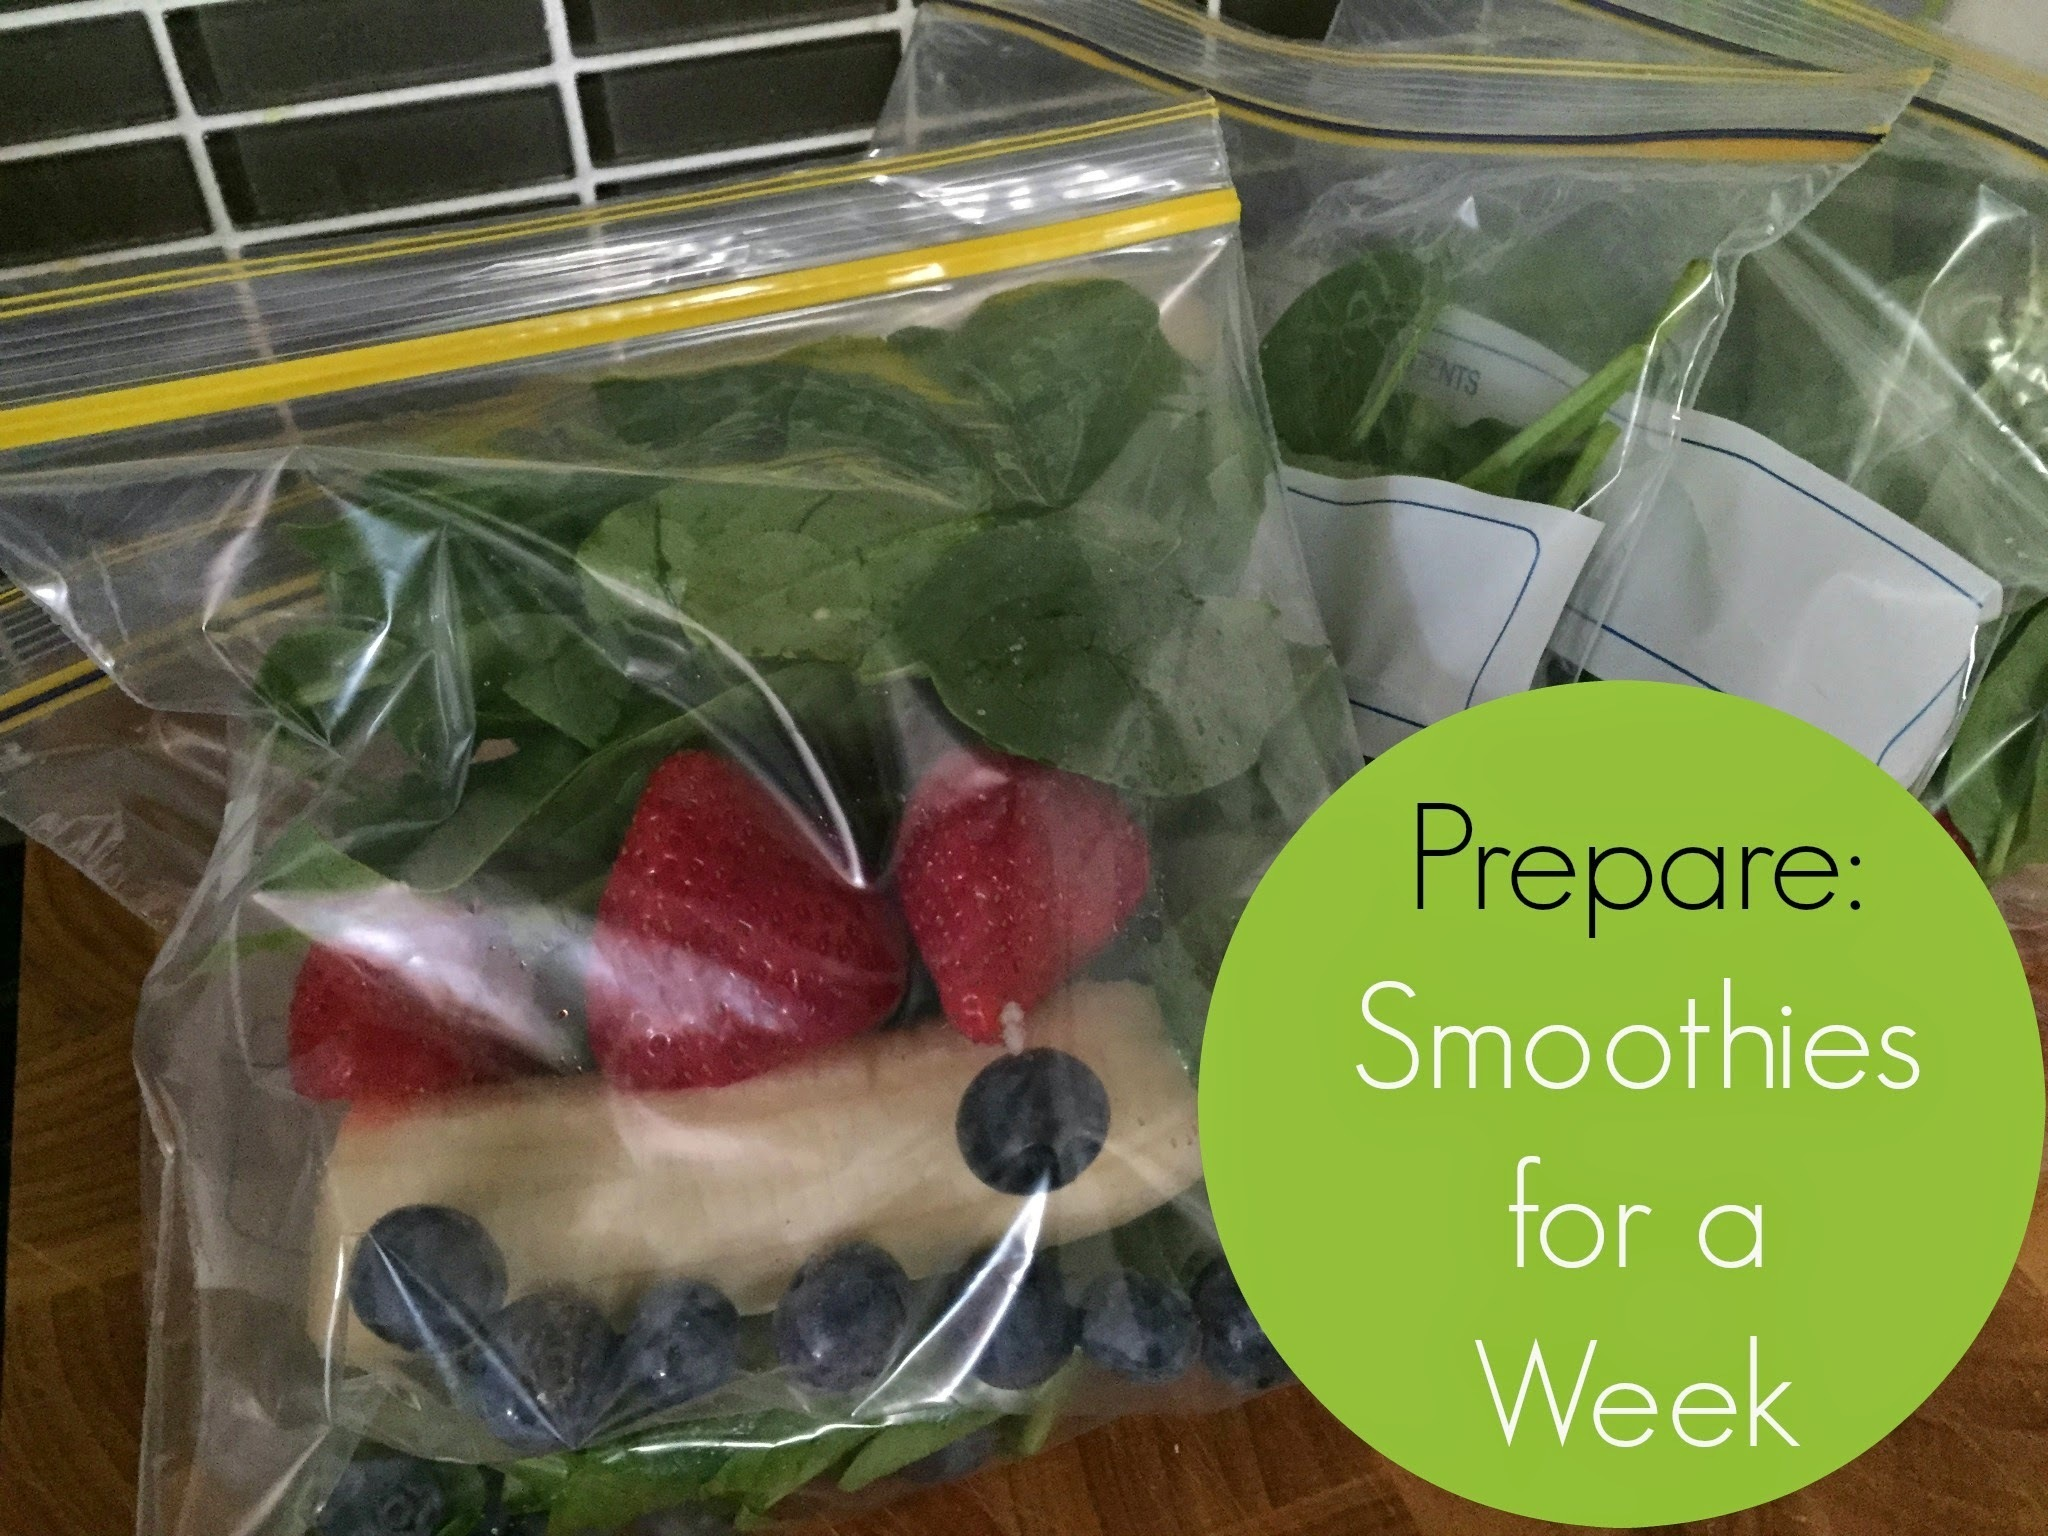 Prepare: Smoothies for A Week